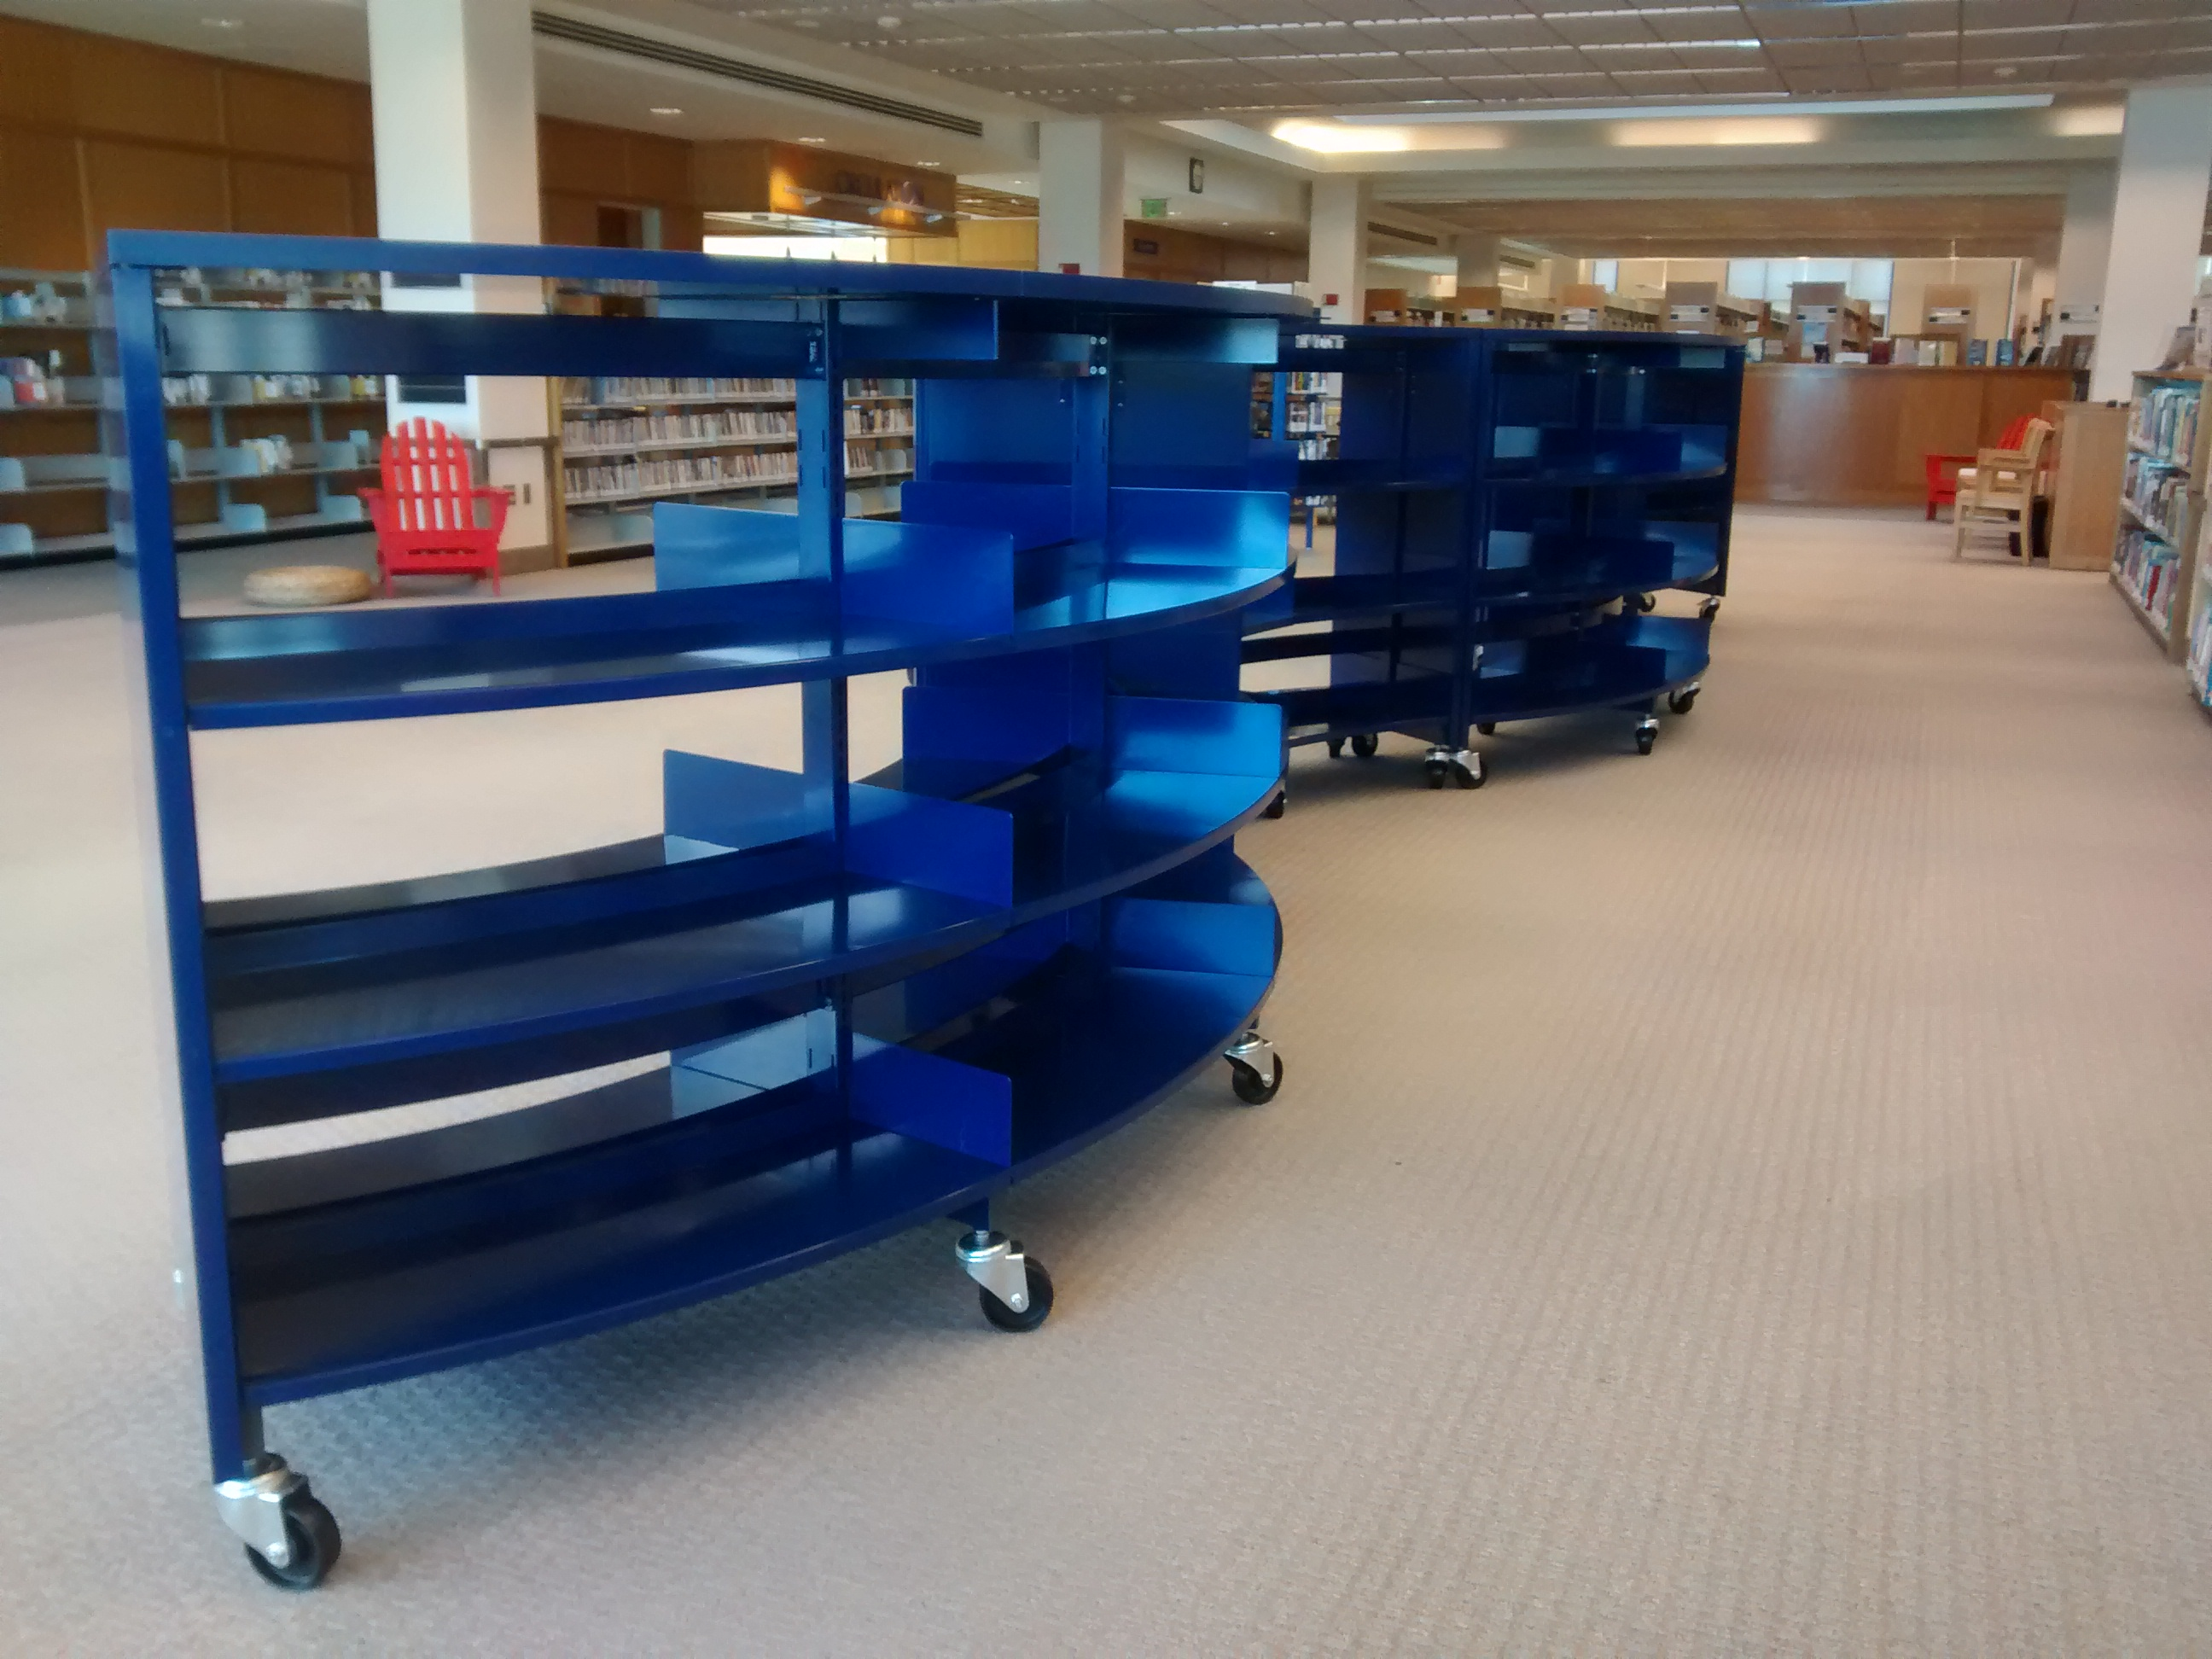 spokane public library gets some shelf help from bci modern library furniture bci modern library furniture